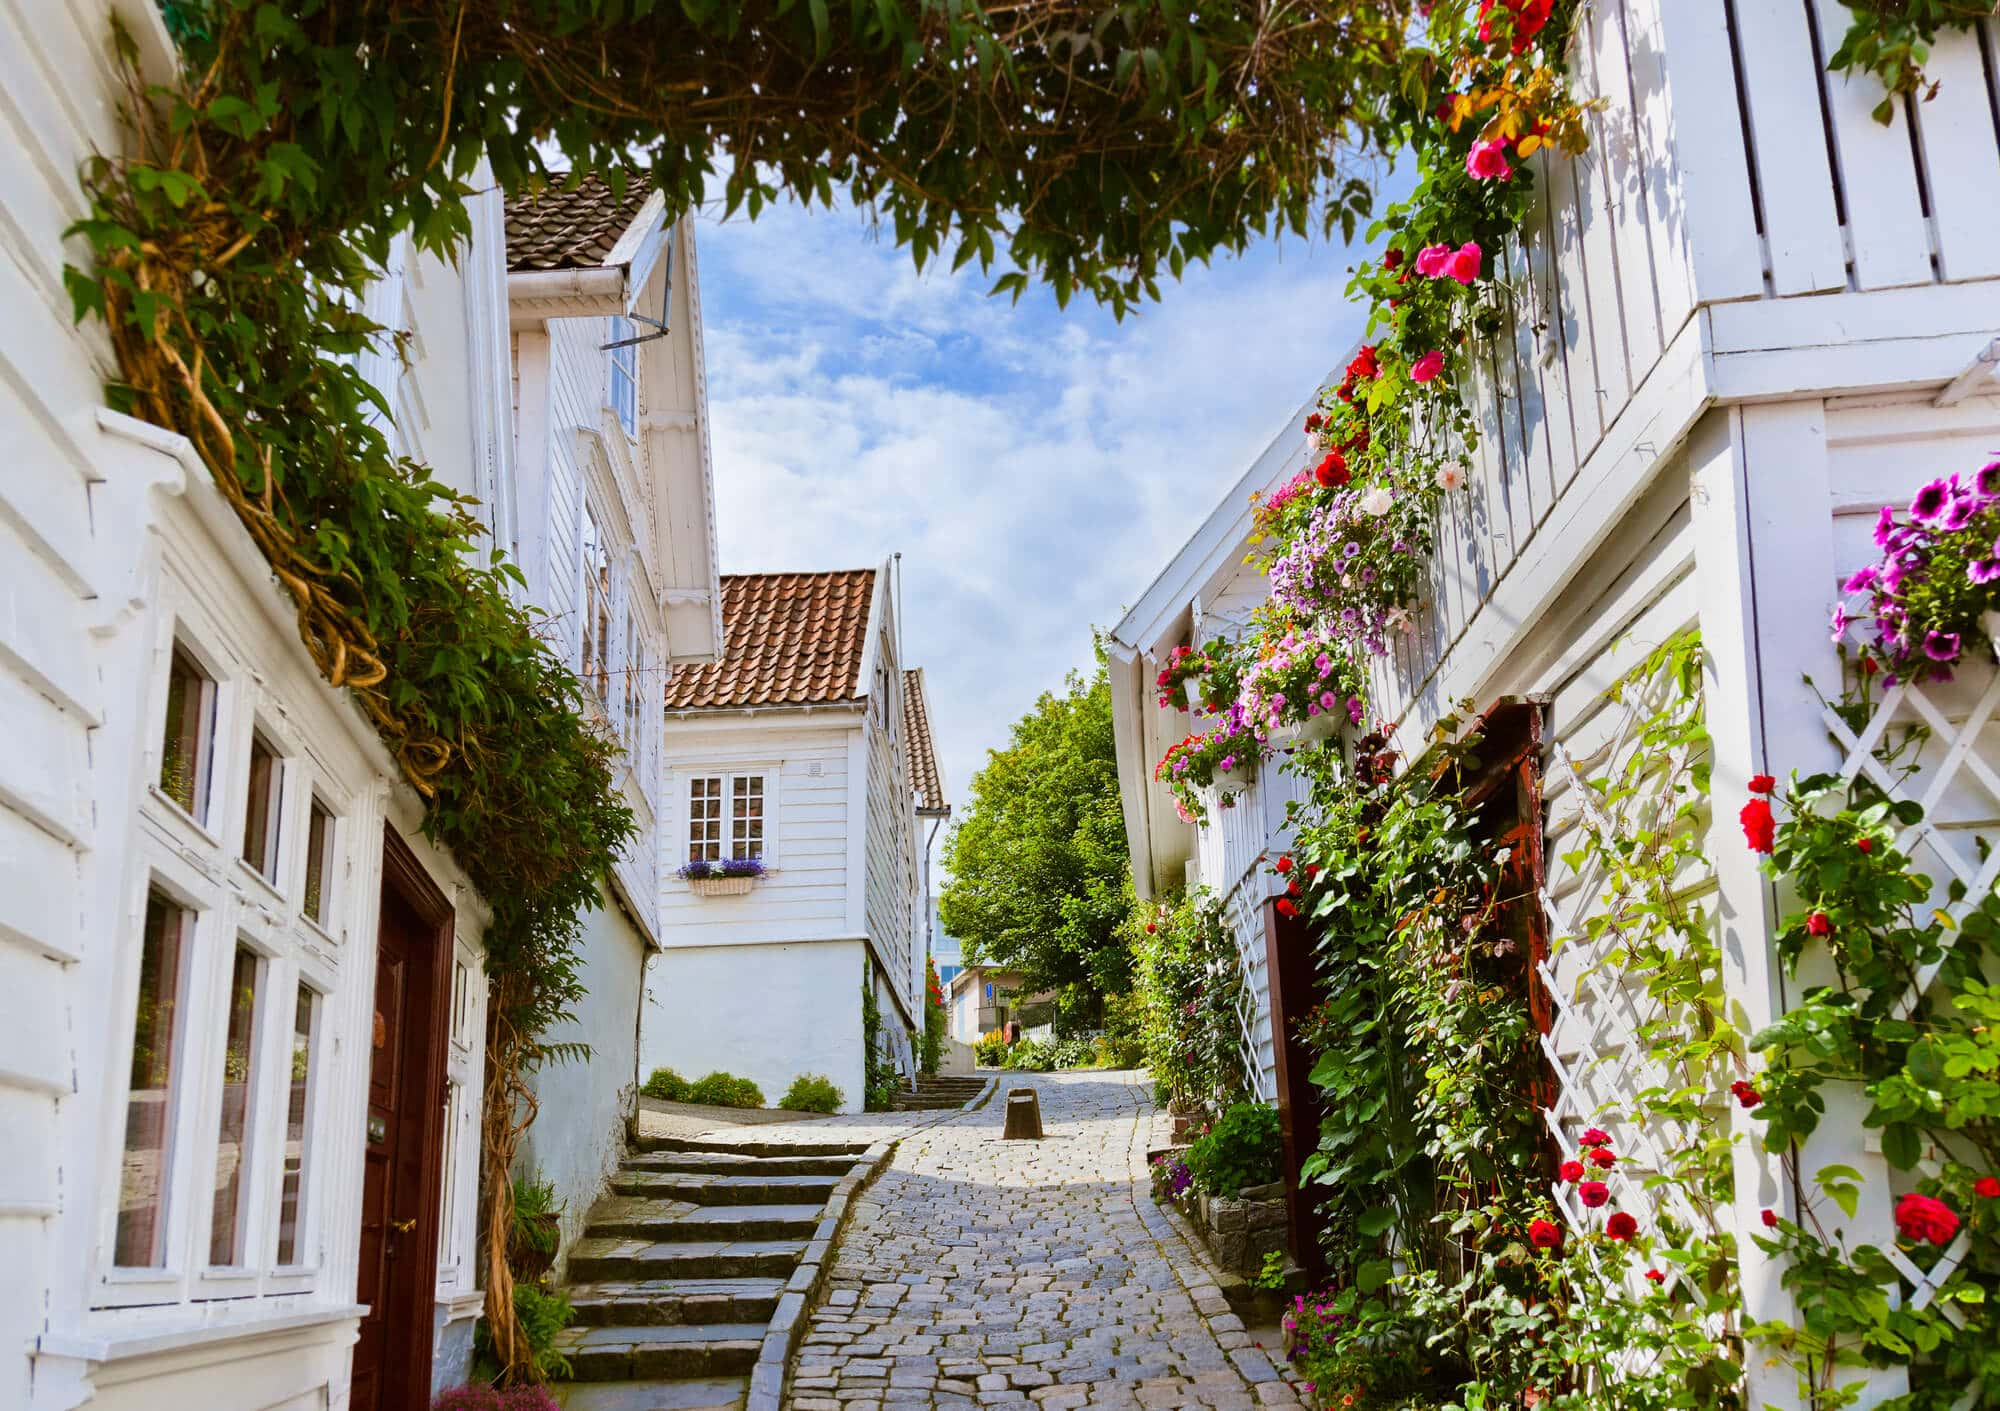 Best things to do in Norway summer - Go for a stroll among the old houses in Stavanger